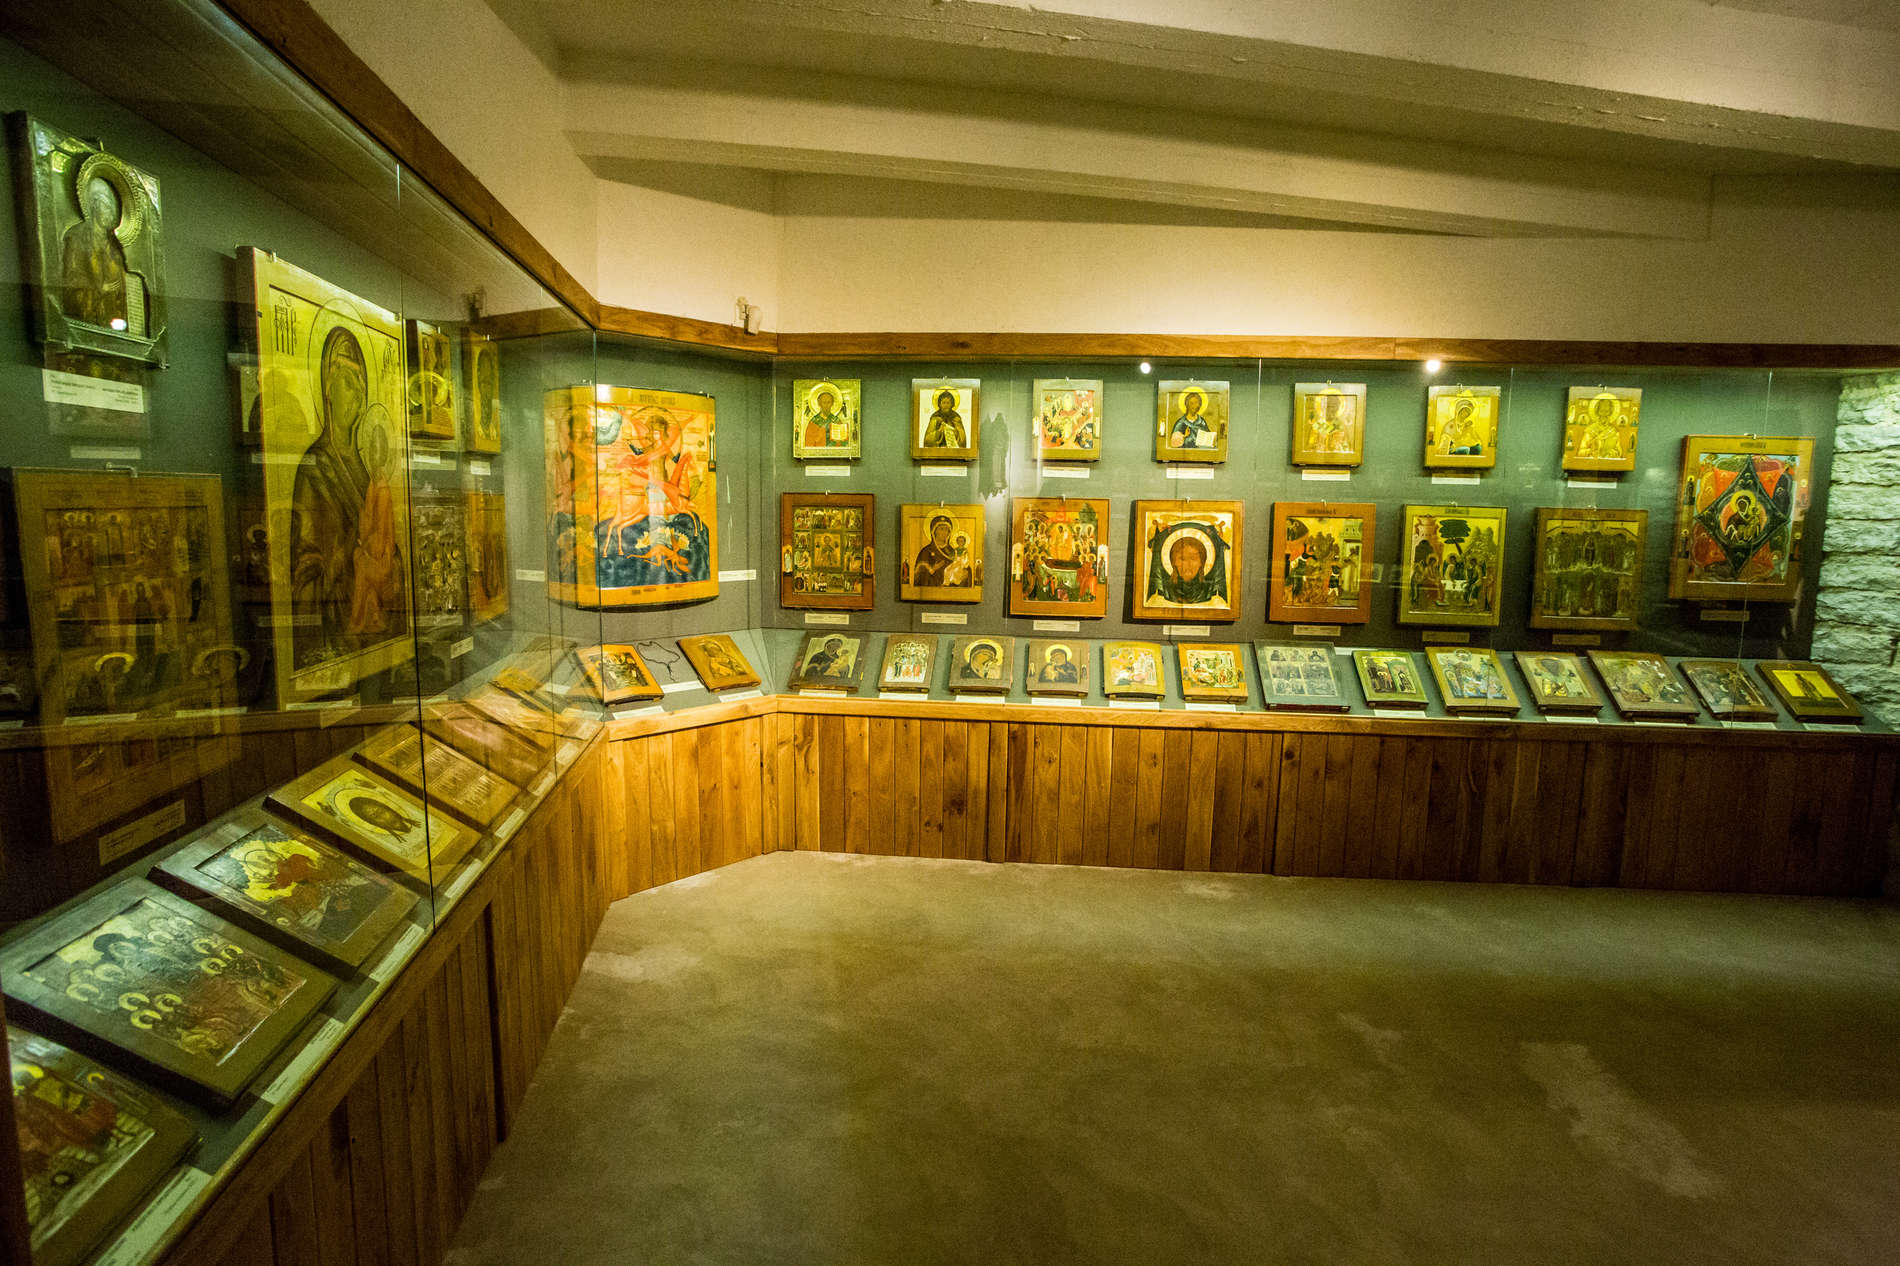 The Museum of Russian Icons in the Old Town of Tallinn, Estonia.